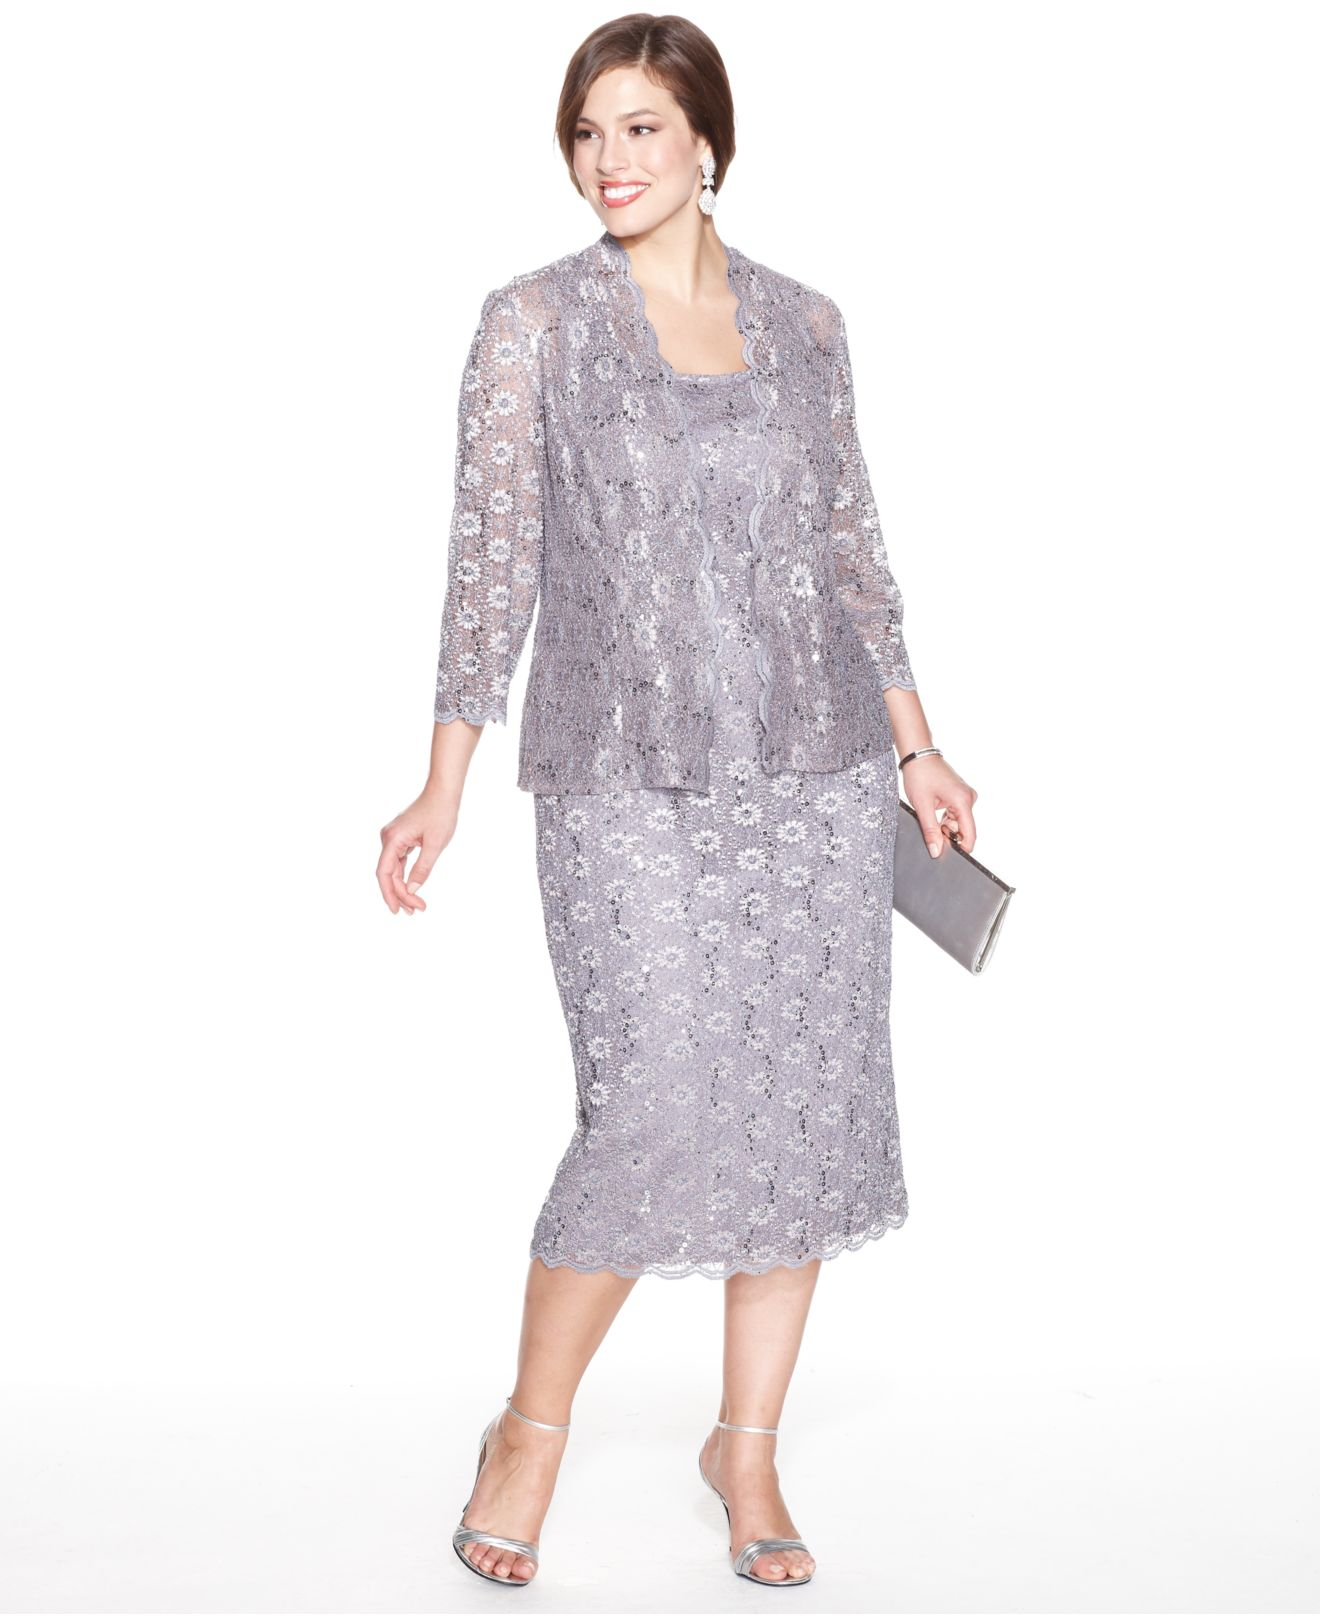 290ff8237a076 Alex Evenings Plus Size Sequin Lace Dress And Jacket in Metallic - Lyst